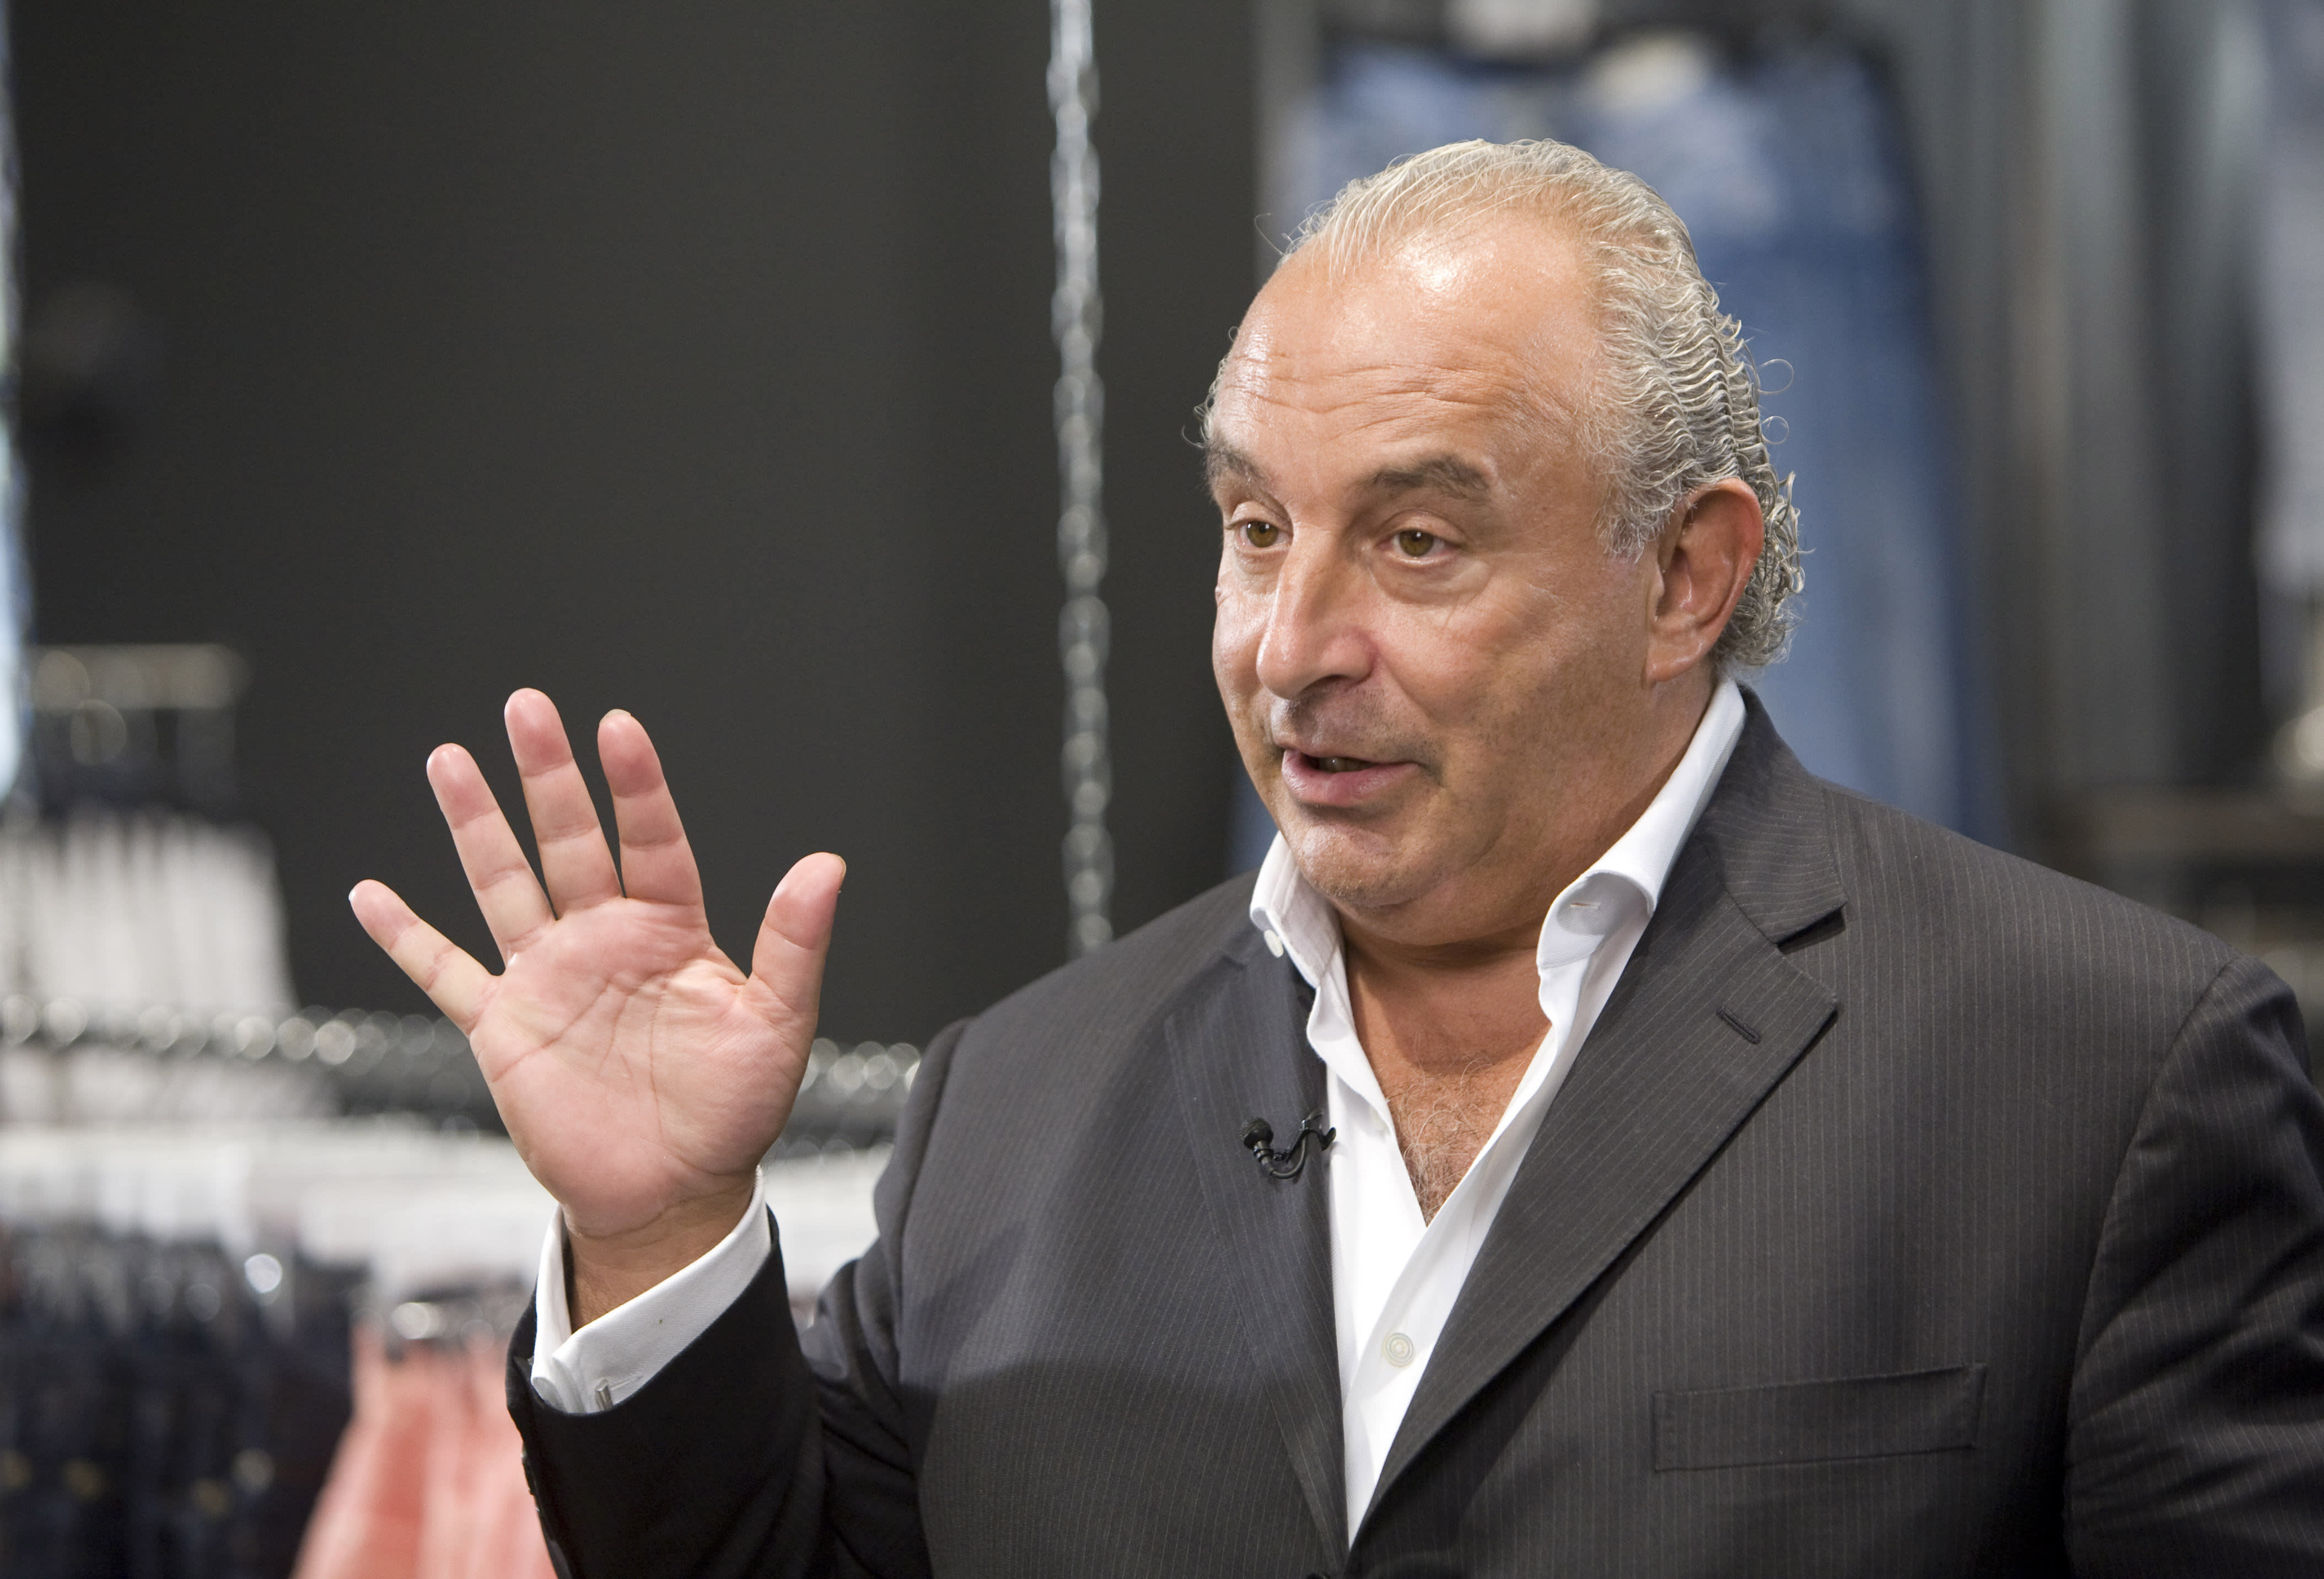 Field asks Sir Philip Green to personally fund pensions